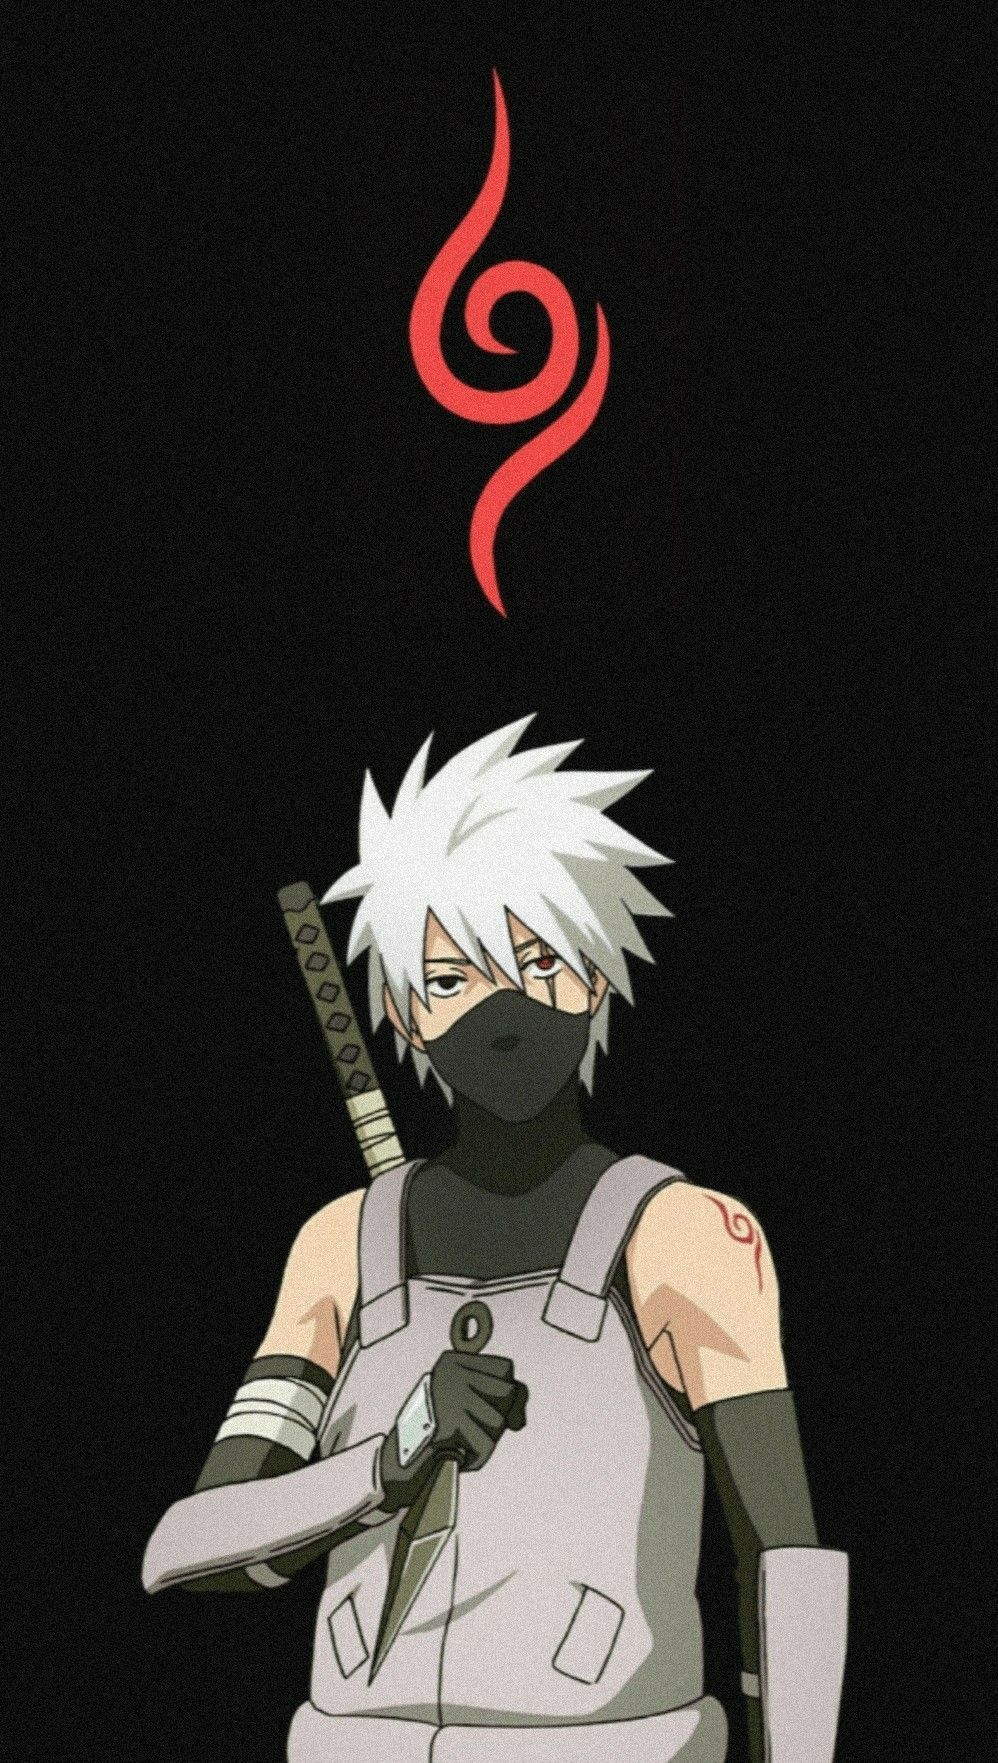 Kakashi Hatake Wallpaper Hd Instagram Vargz7 Narutowallpaper